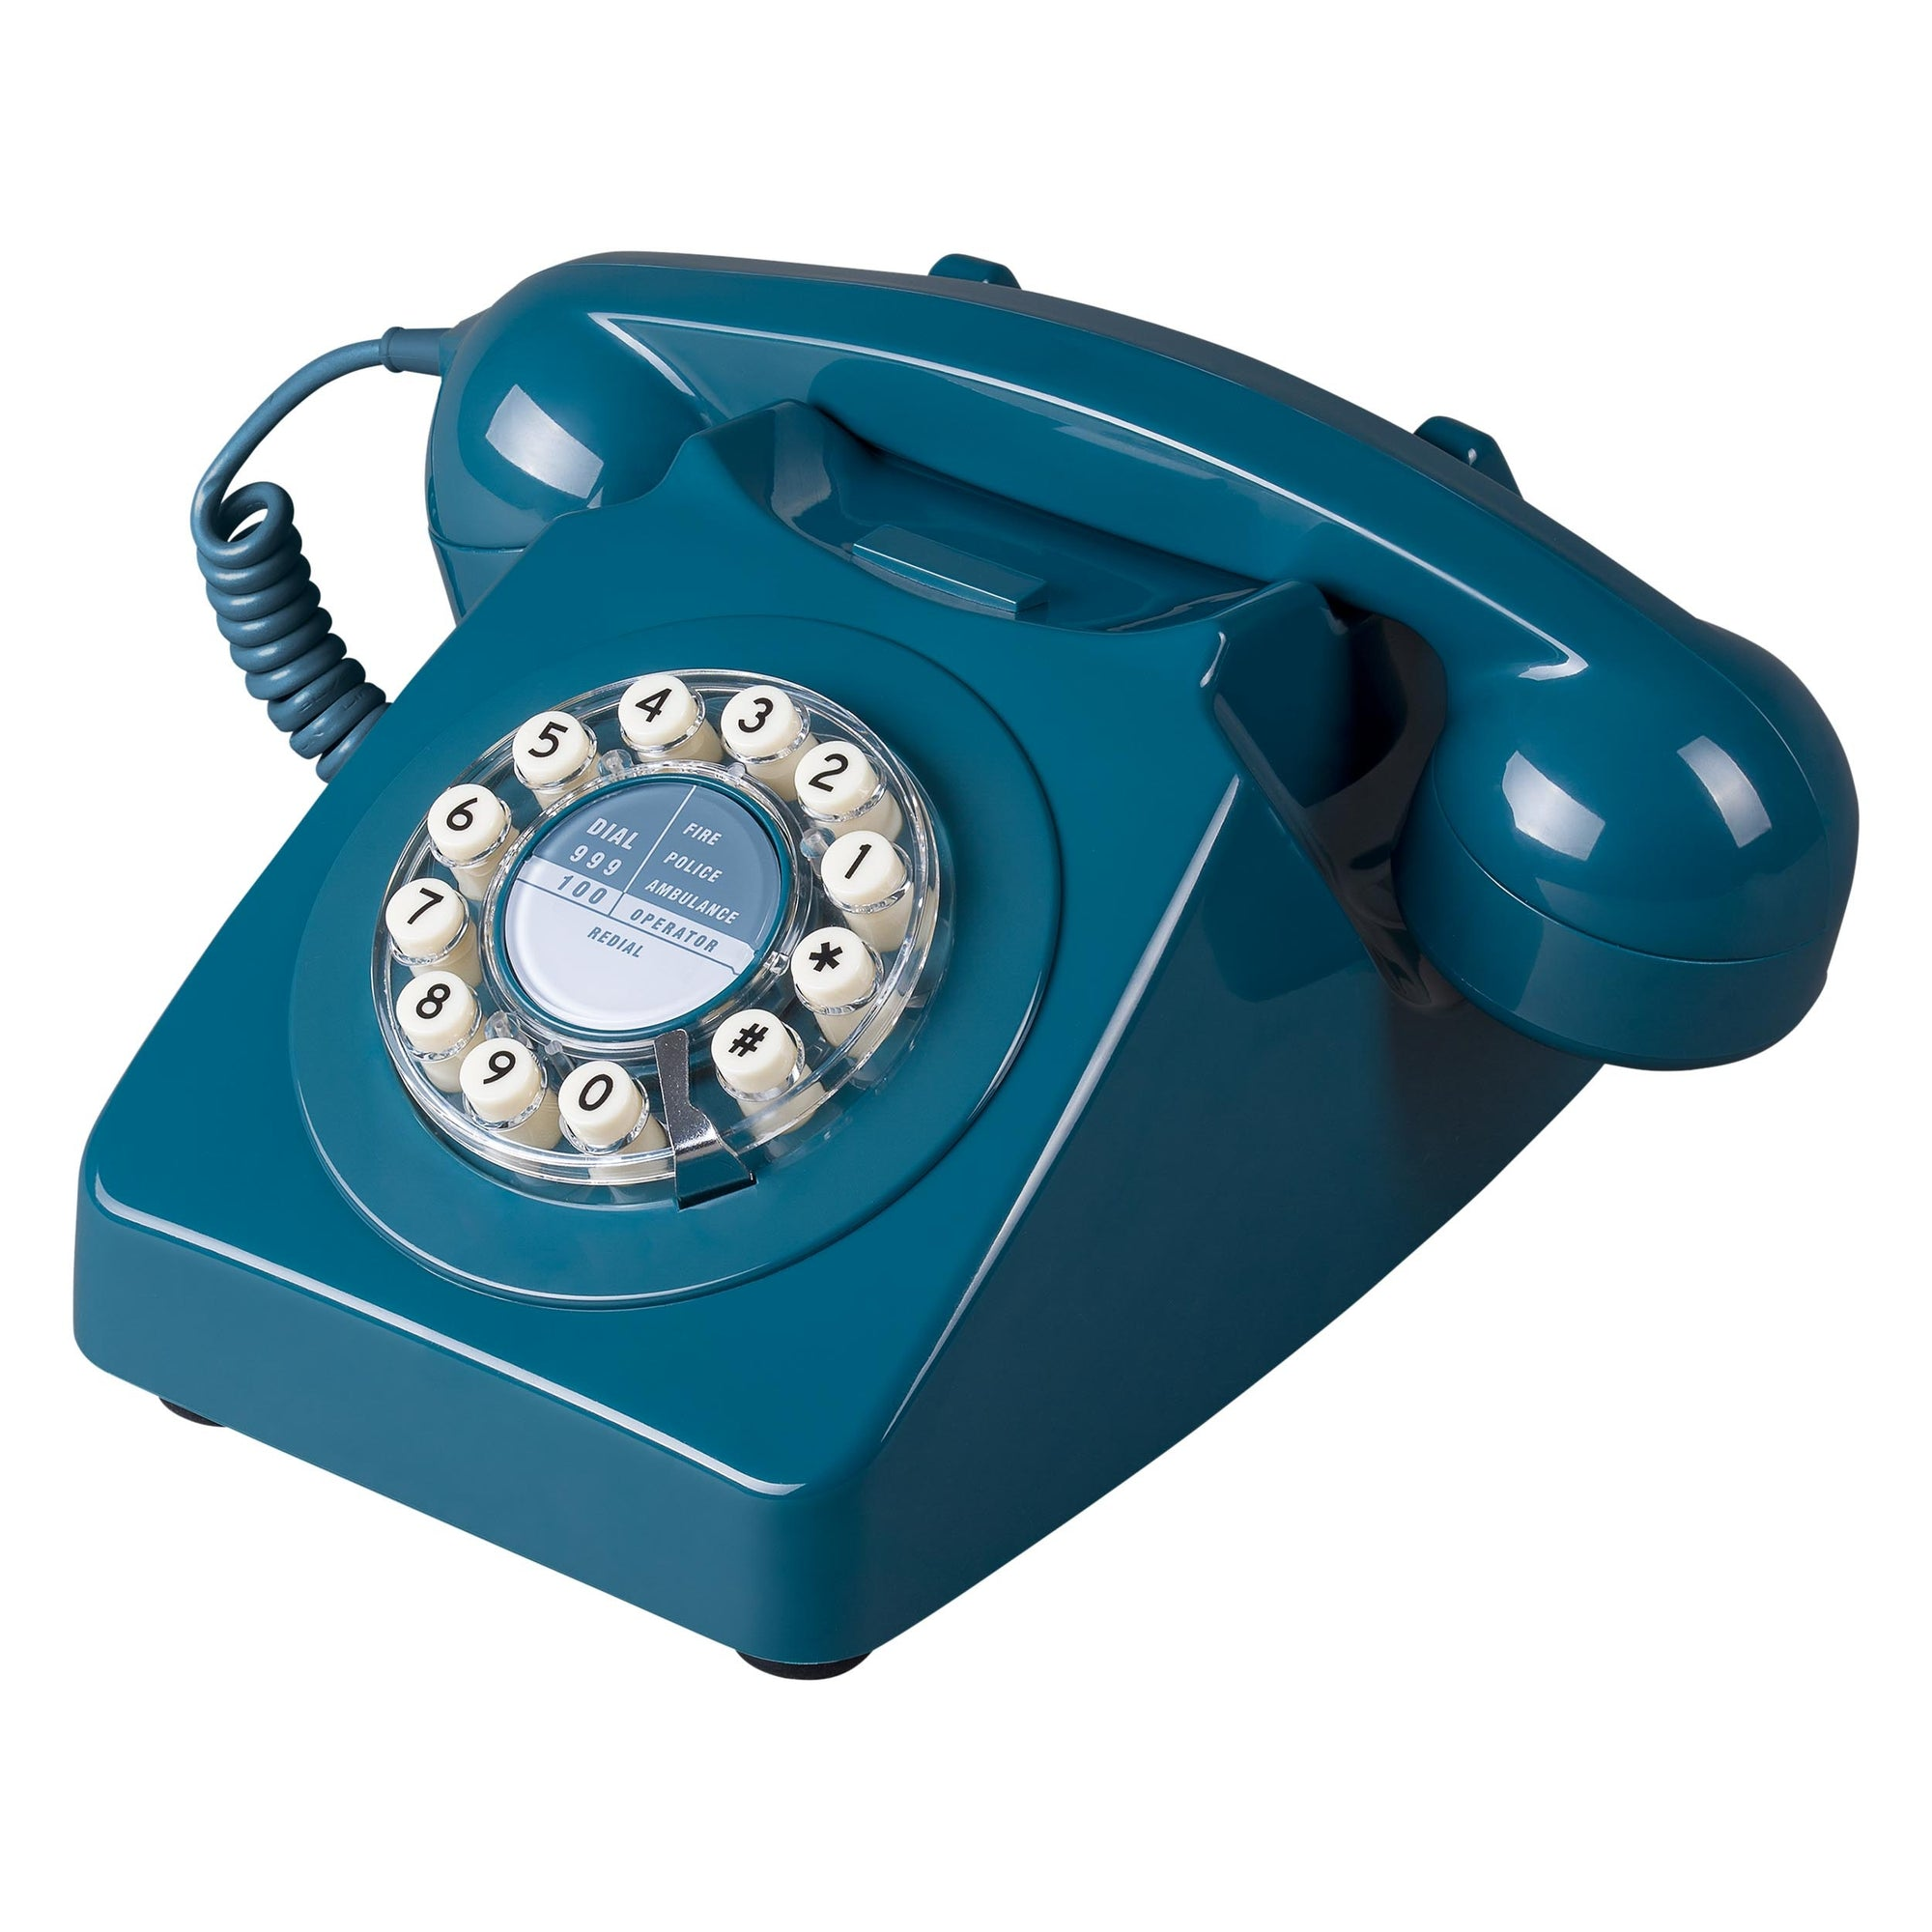 Wild and Wolf 746 Corded Phone | Biscay Blue